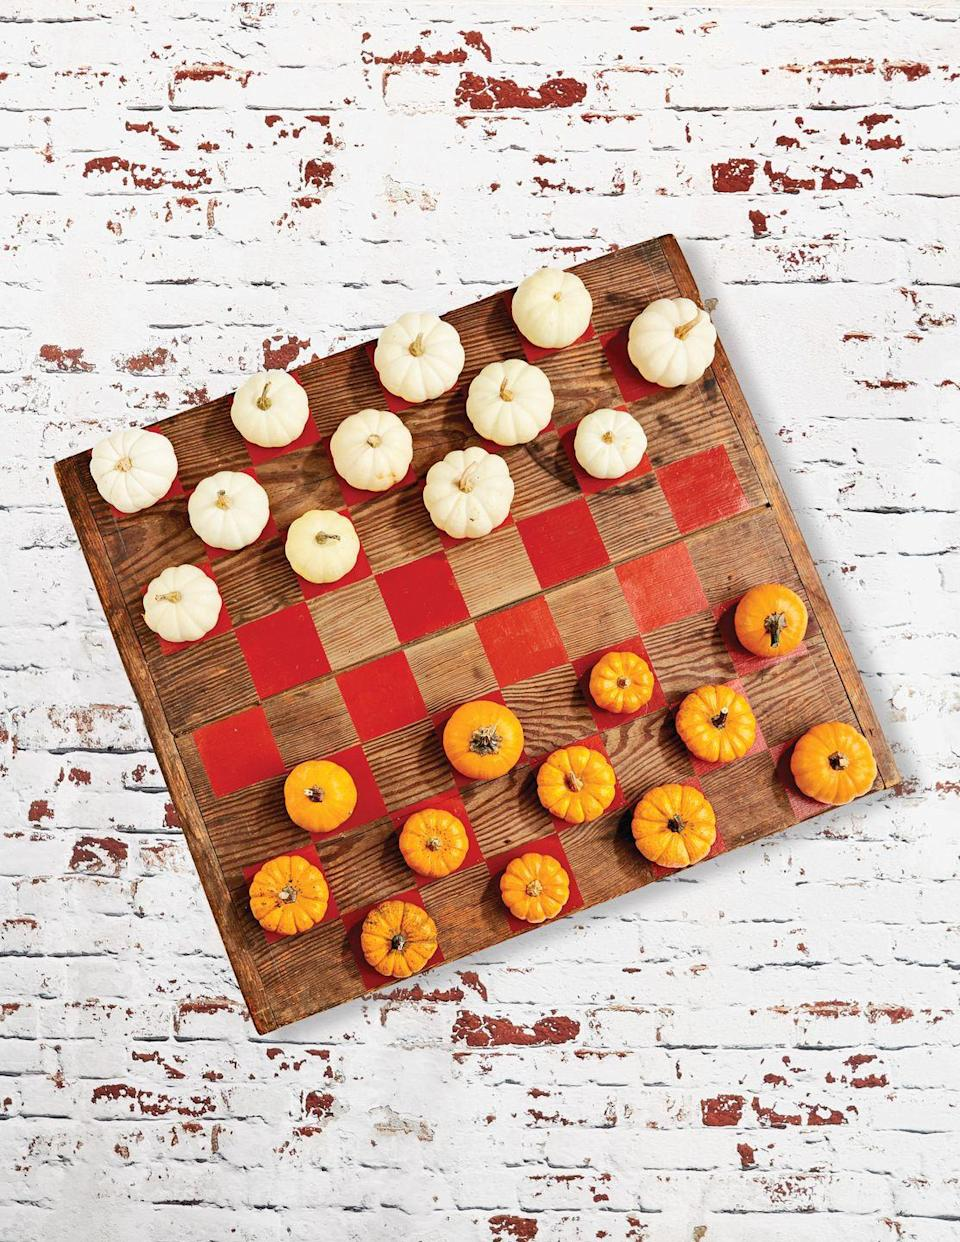 <p>Fall's a whole lot more fun when you can play <em>with</em> it, not just in it! These checkers allow you to do just that. The whole project is such a fun alternative to the store-bought version.</p><p><strong>Make the game:</strong> Paint 32 squares on a large (roughly 30-inch) wood board with burnt orange craft paint. Use mini white and orange pumpkins as game pieces. </p>